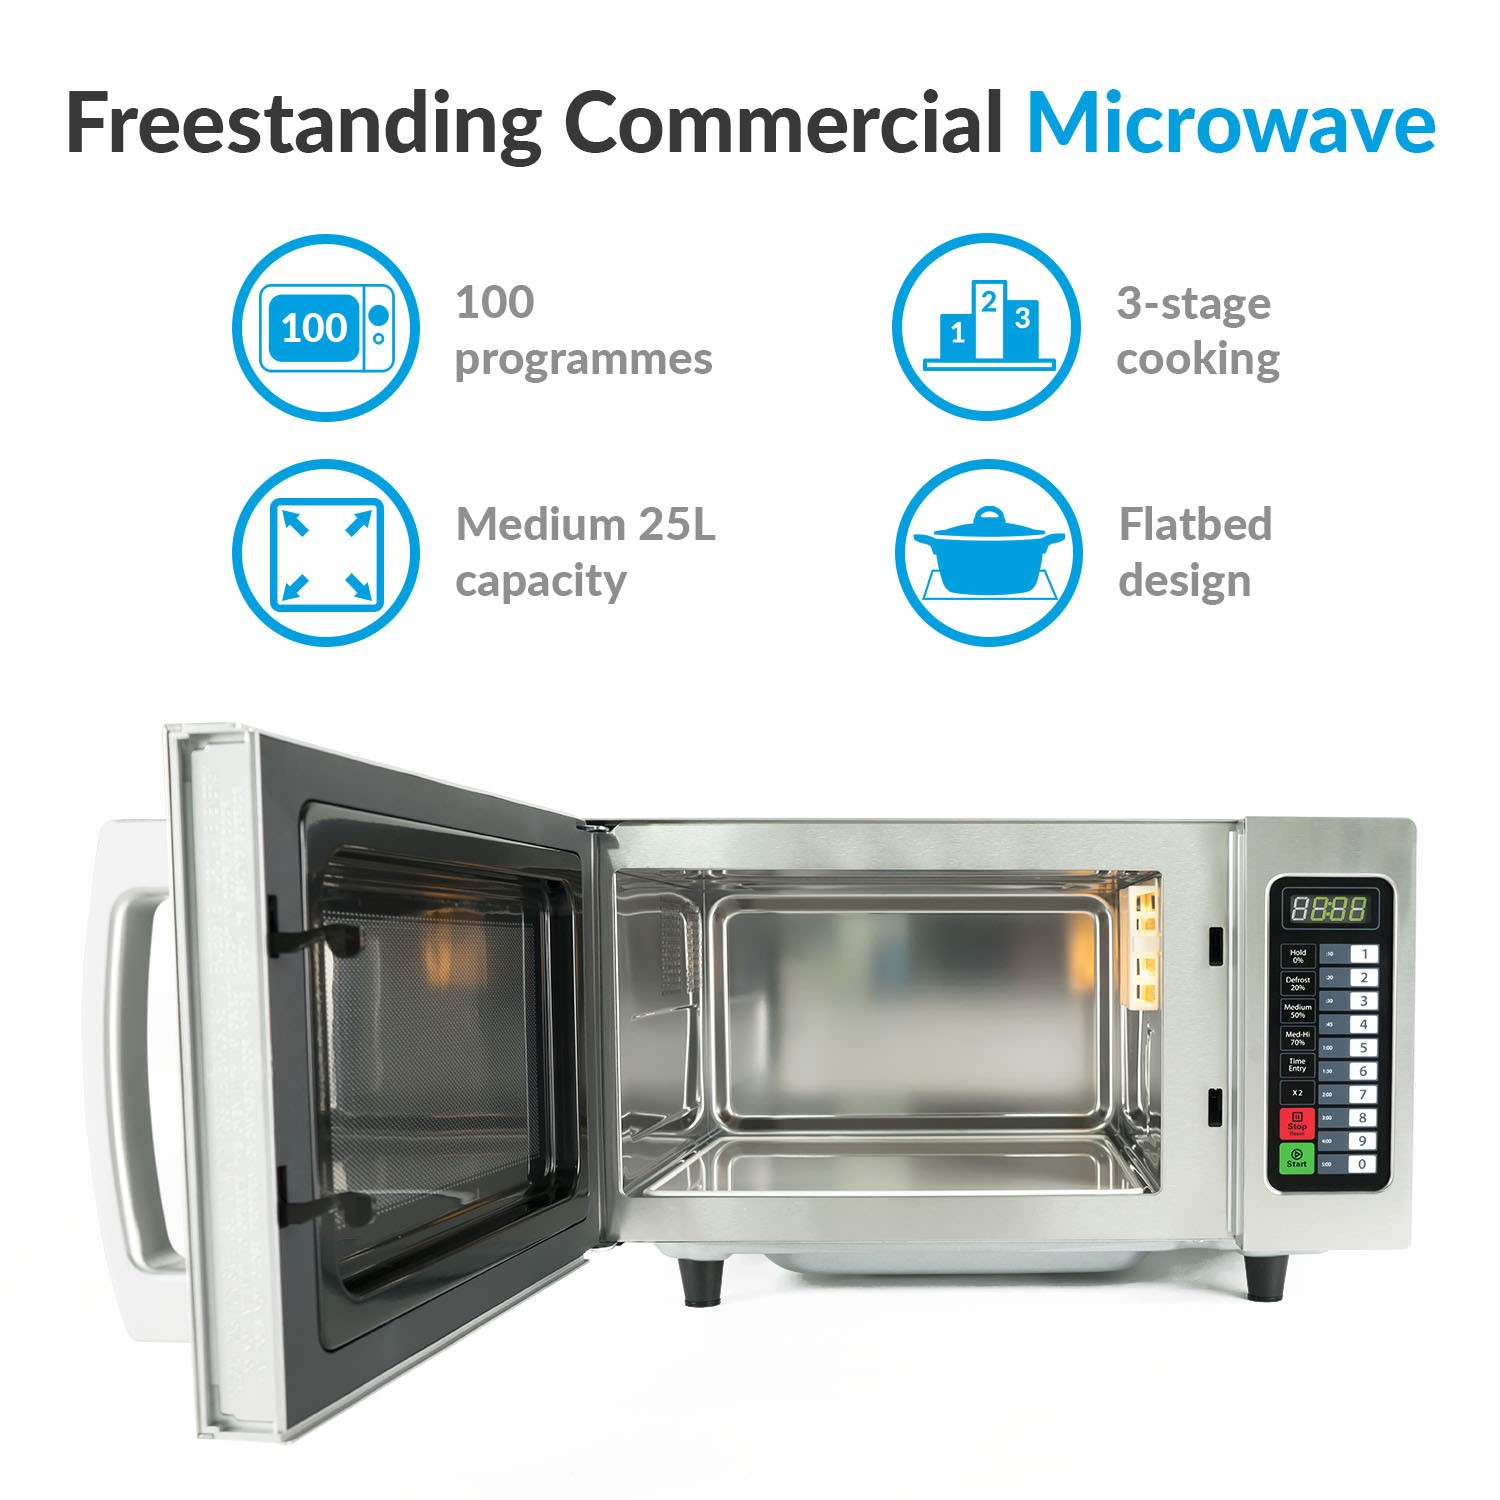 grade a1 electriq 1000w 25l programmable commercial microwave for commercial kitchens catering stainless steel